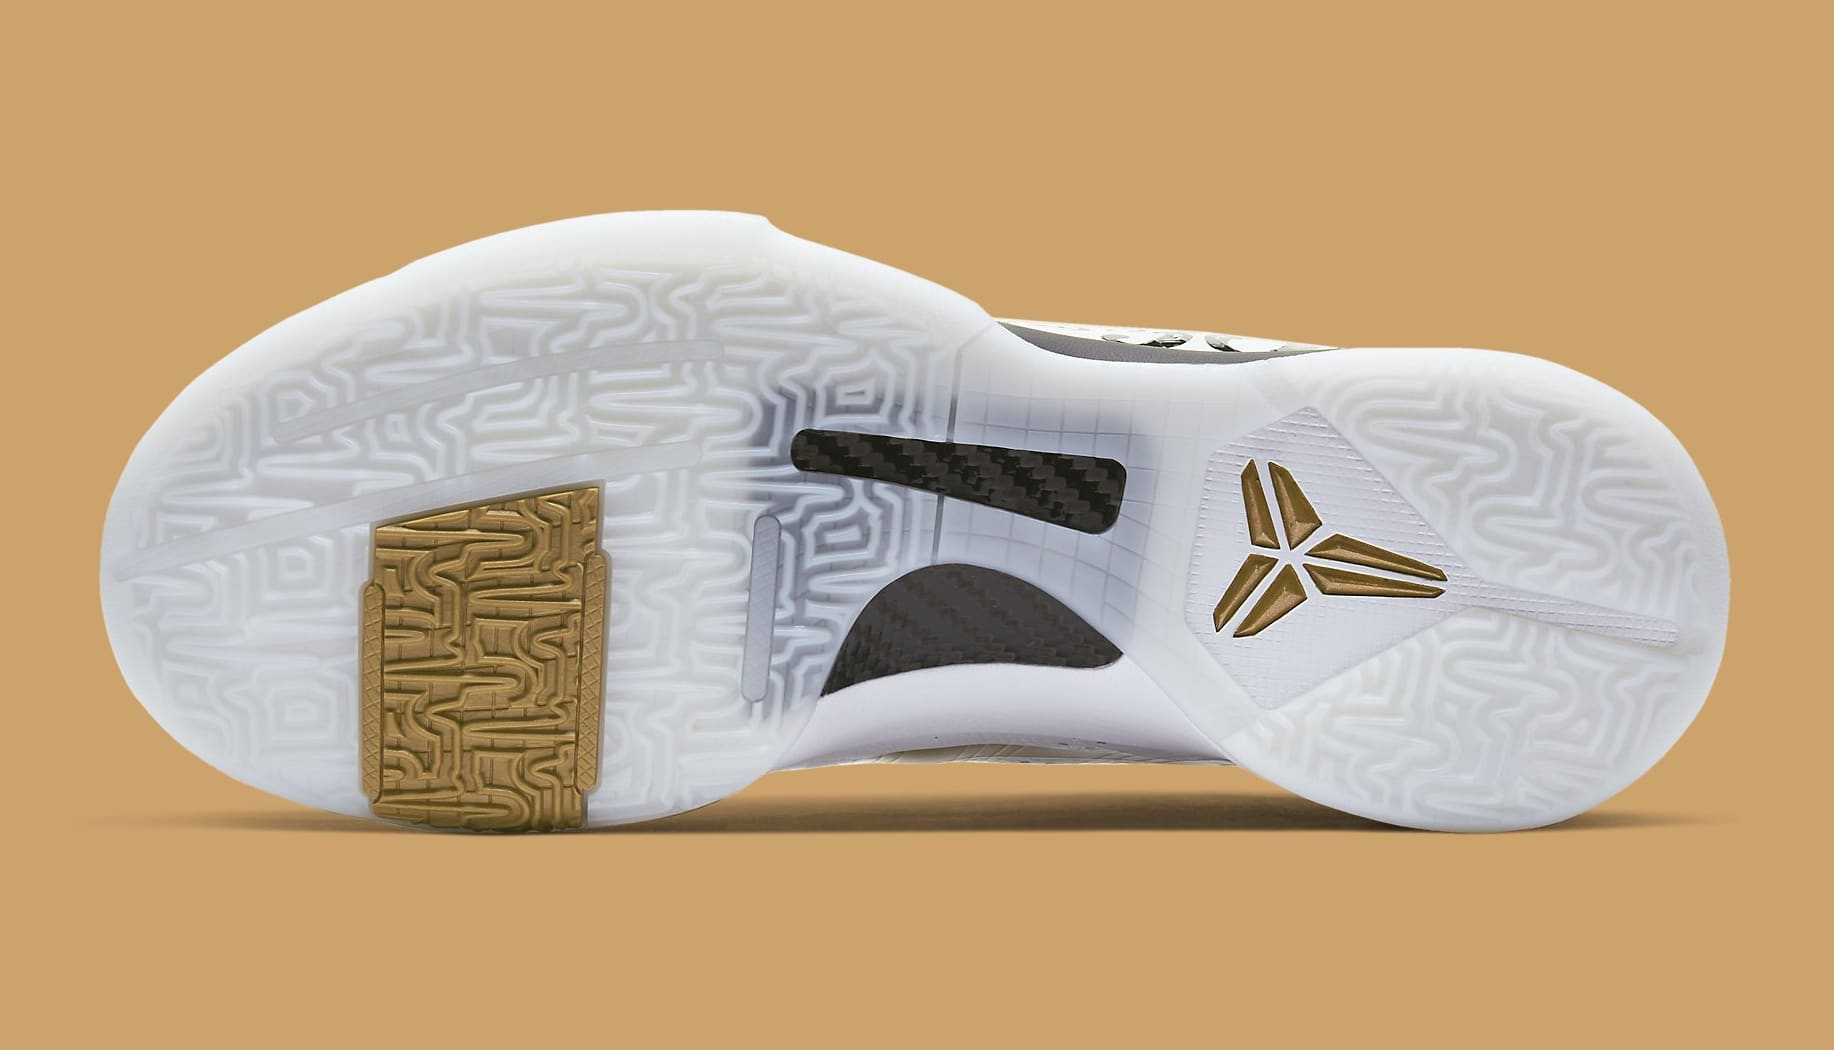 Nike Kobe 5 Big Stage Parade Release Date CT8014-100 Sole